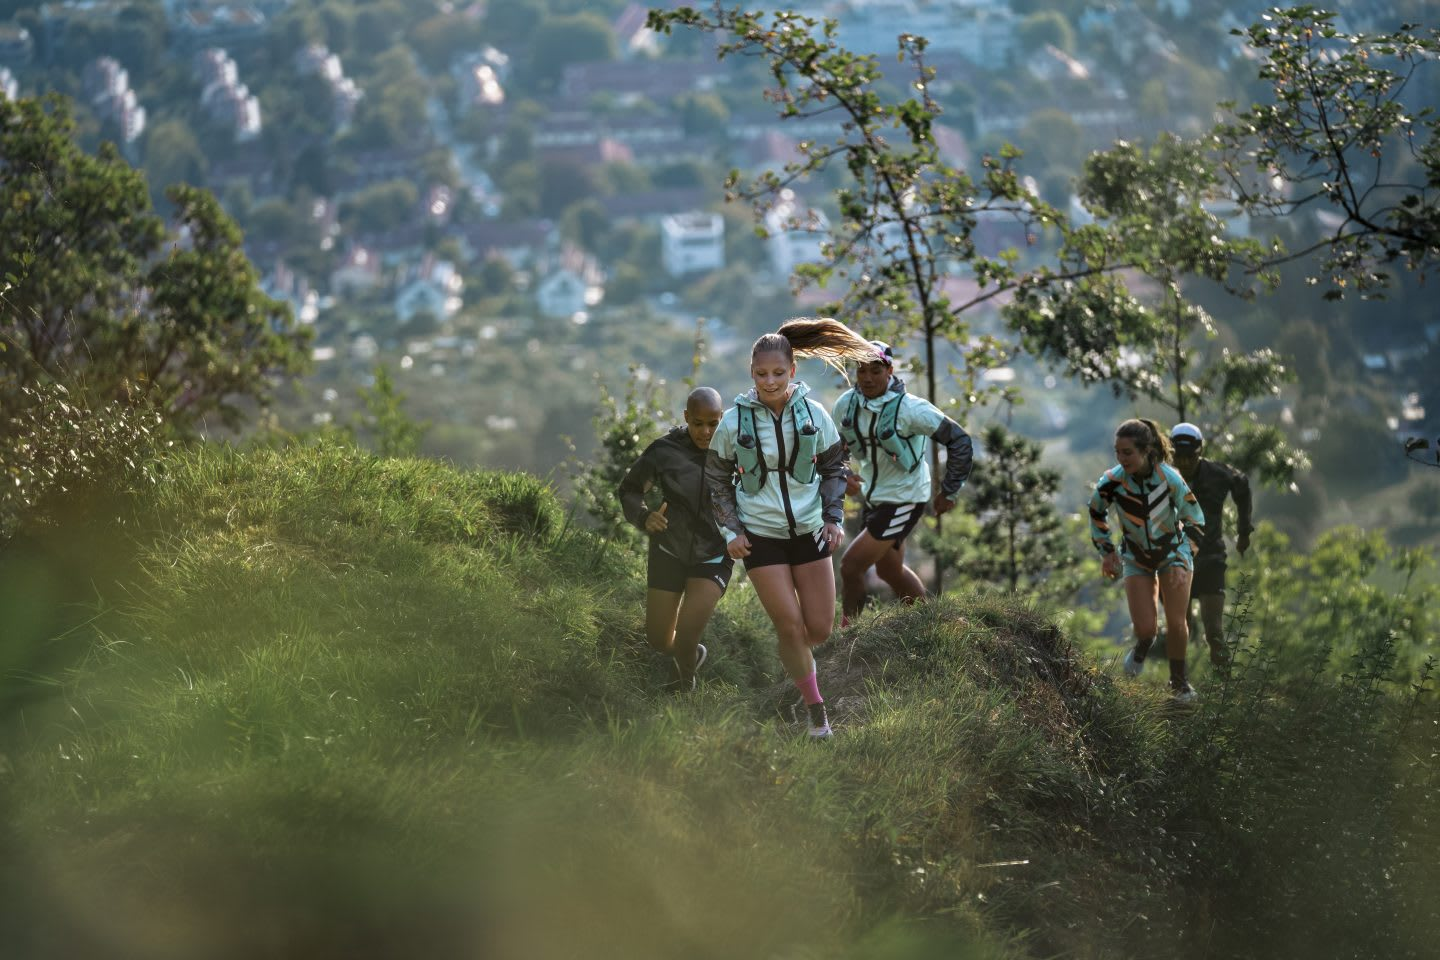 Group of men and women trail running in an outdoor environment, adidas, Outdoor, Terrex, sports, exercise